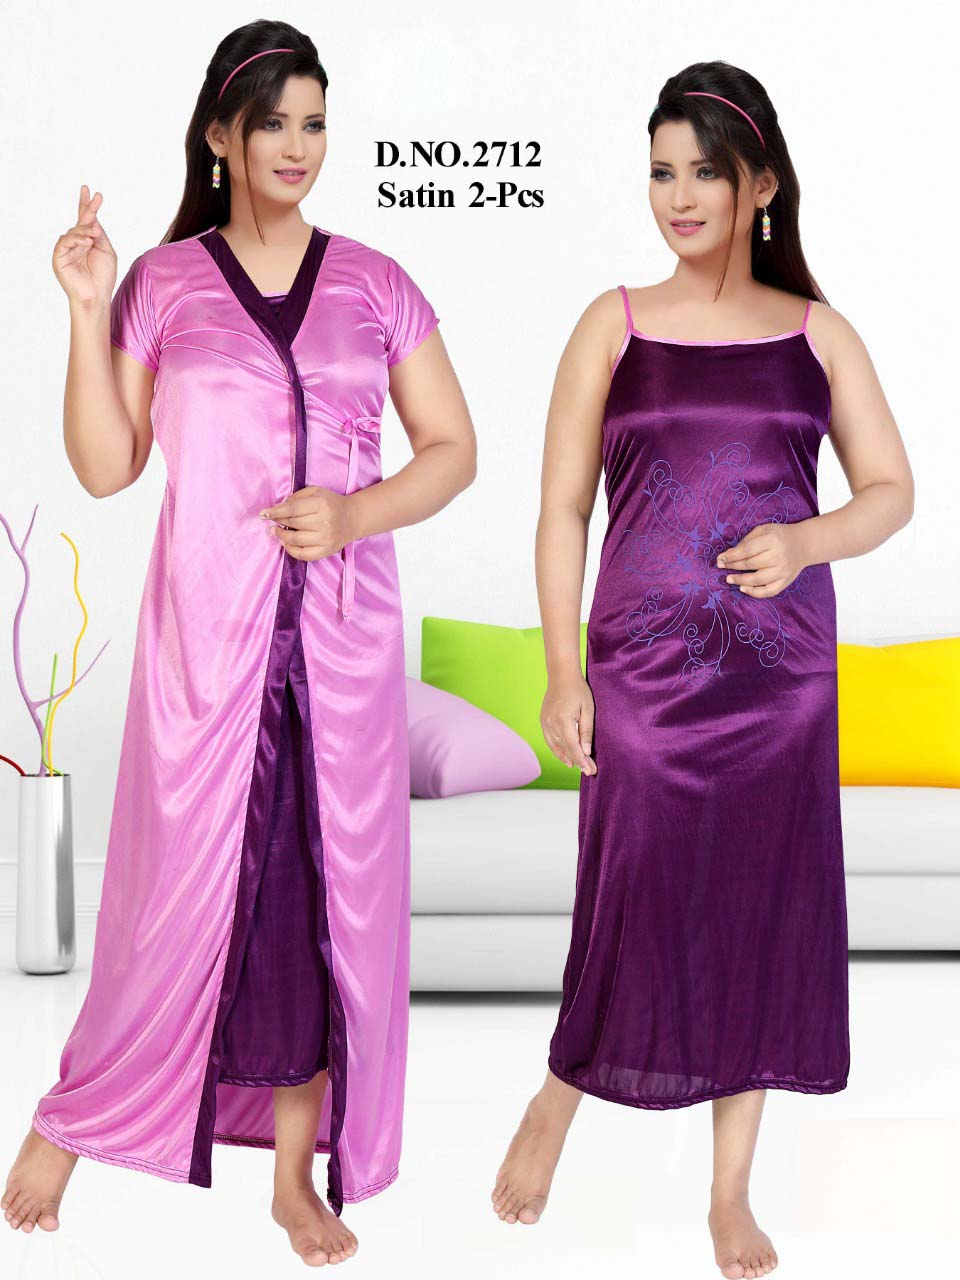 SATIN TWO PIECE NIGTHY-PURPLE-KC JUNE 2712